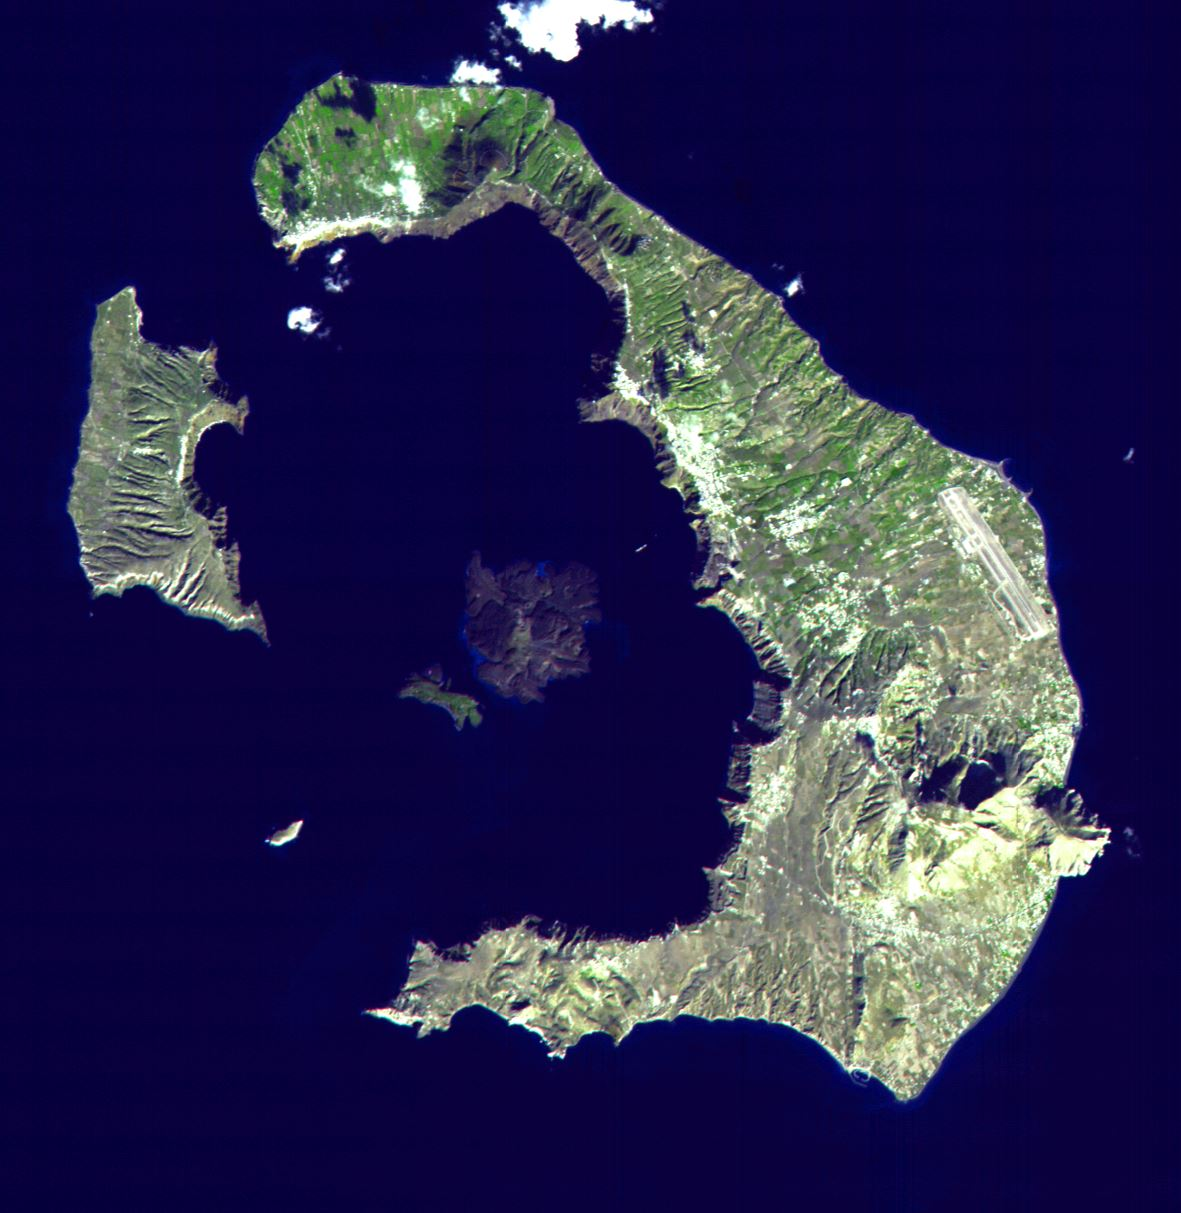 The Greek islands of Santorini form the perimeter of a volcano whose last major explosion happened about 3,400 years ago. Now the center of the crater-like caldera is filled with seawater - Image Credit:. NASA/GSFC/METI/ERSDAC/JAROS and U.S./Japan ASTER Science Team ,  CC BY